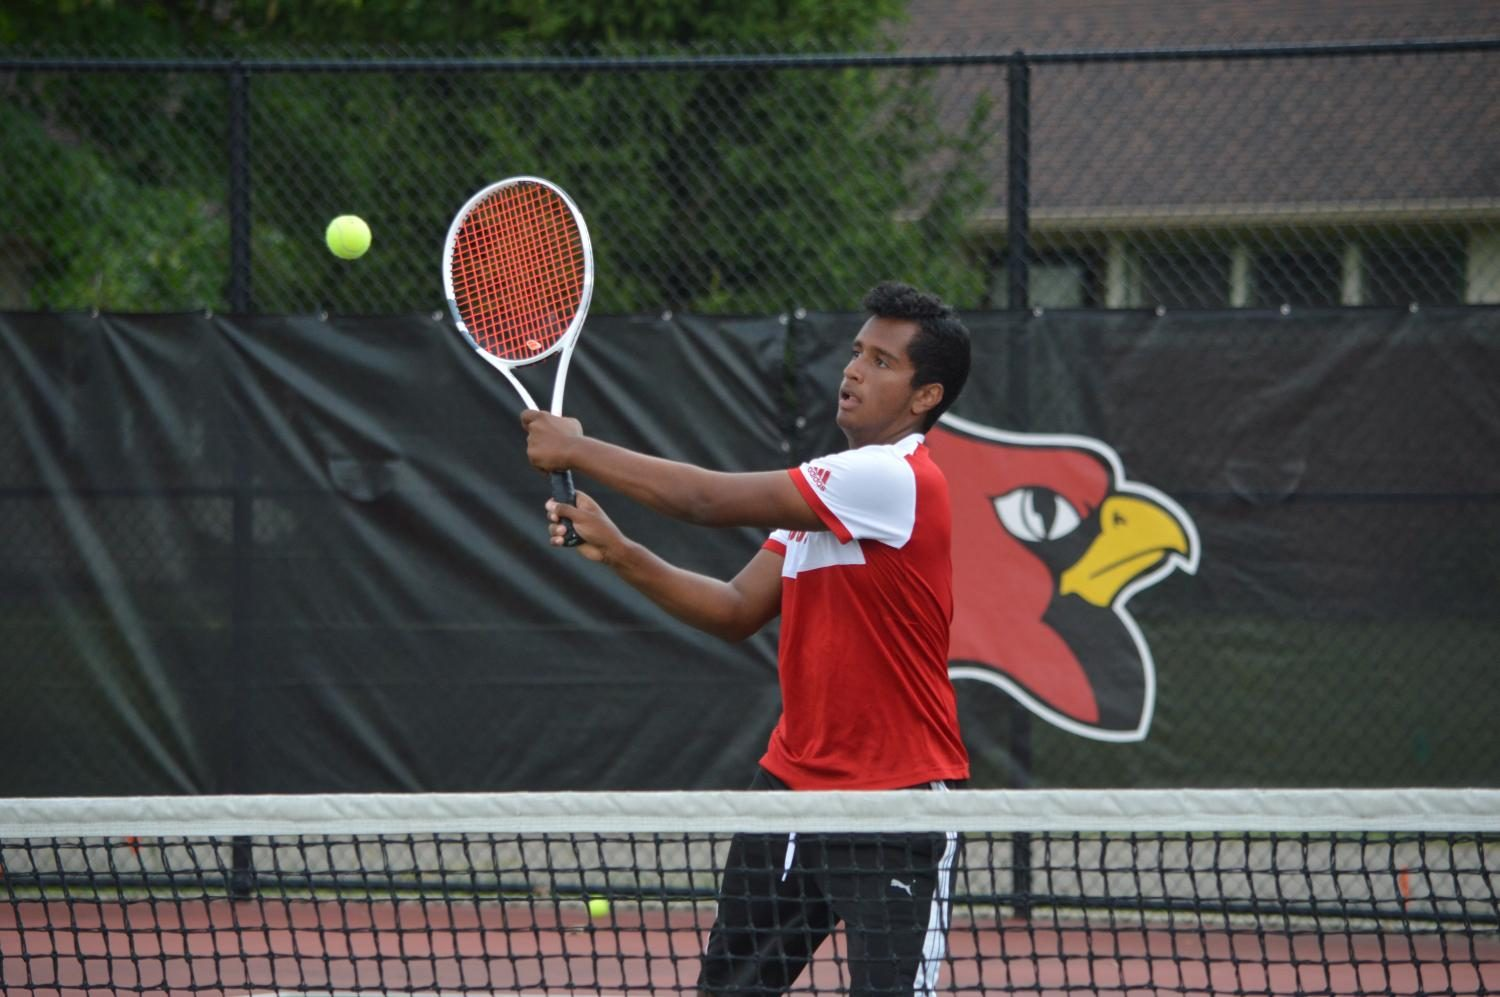 Senior Seejay Patel swings at the ball during a practice.